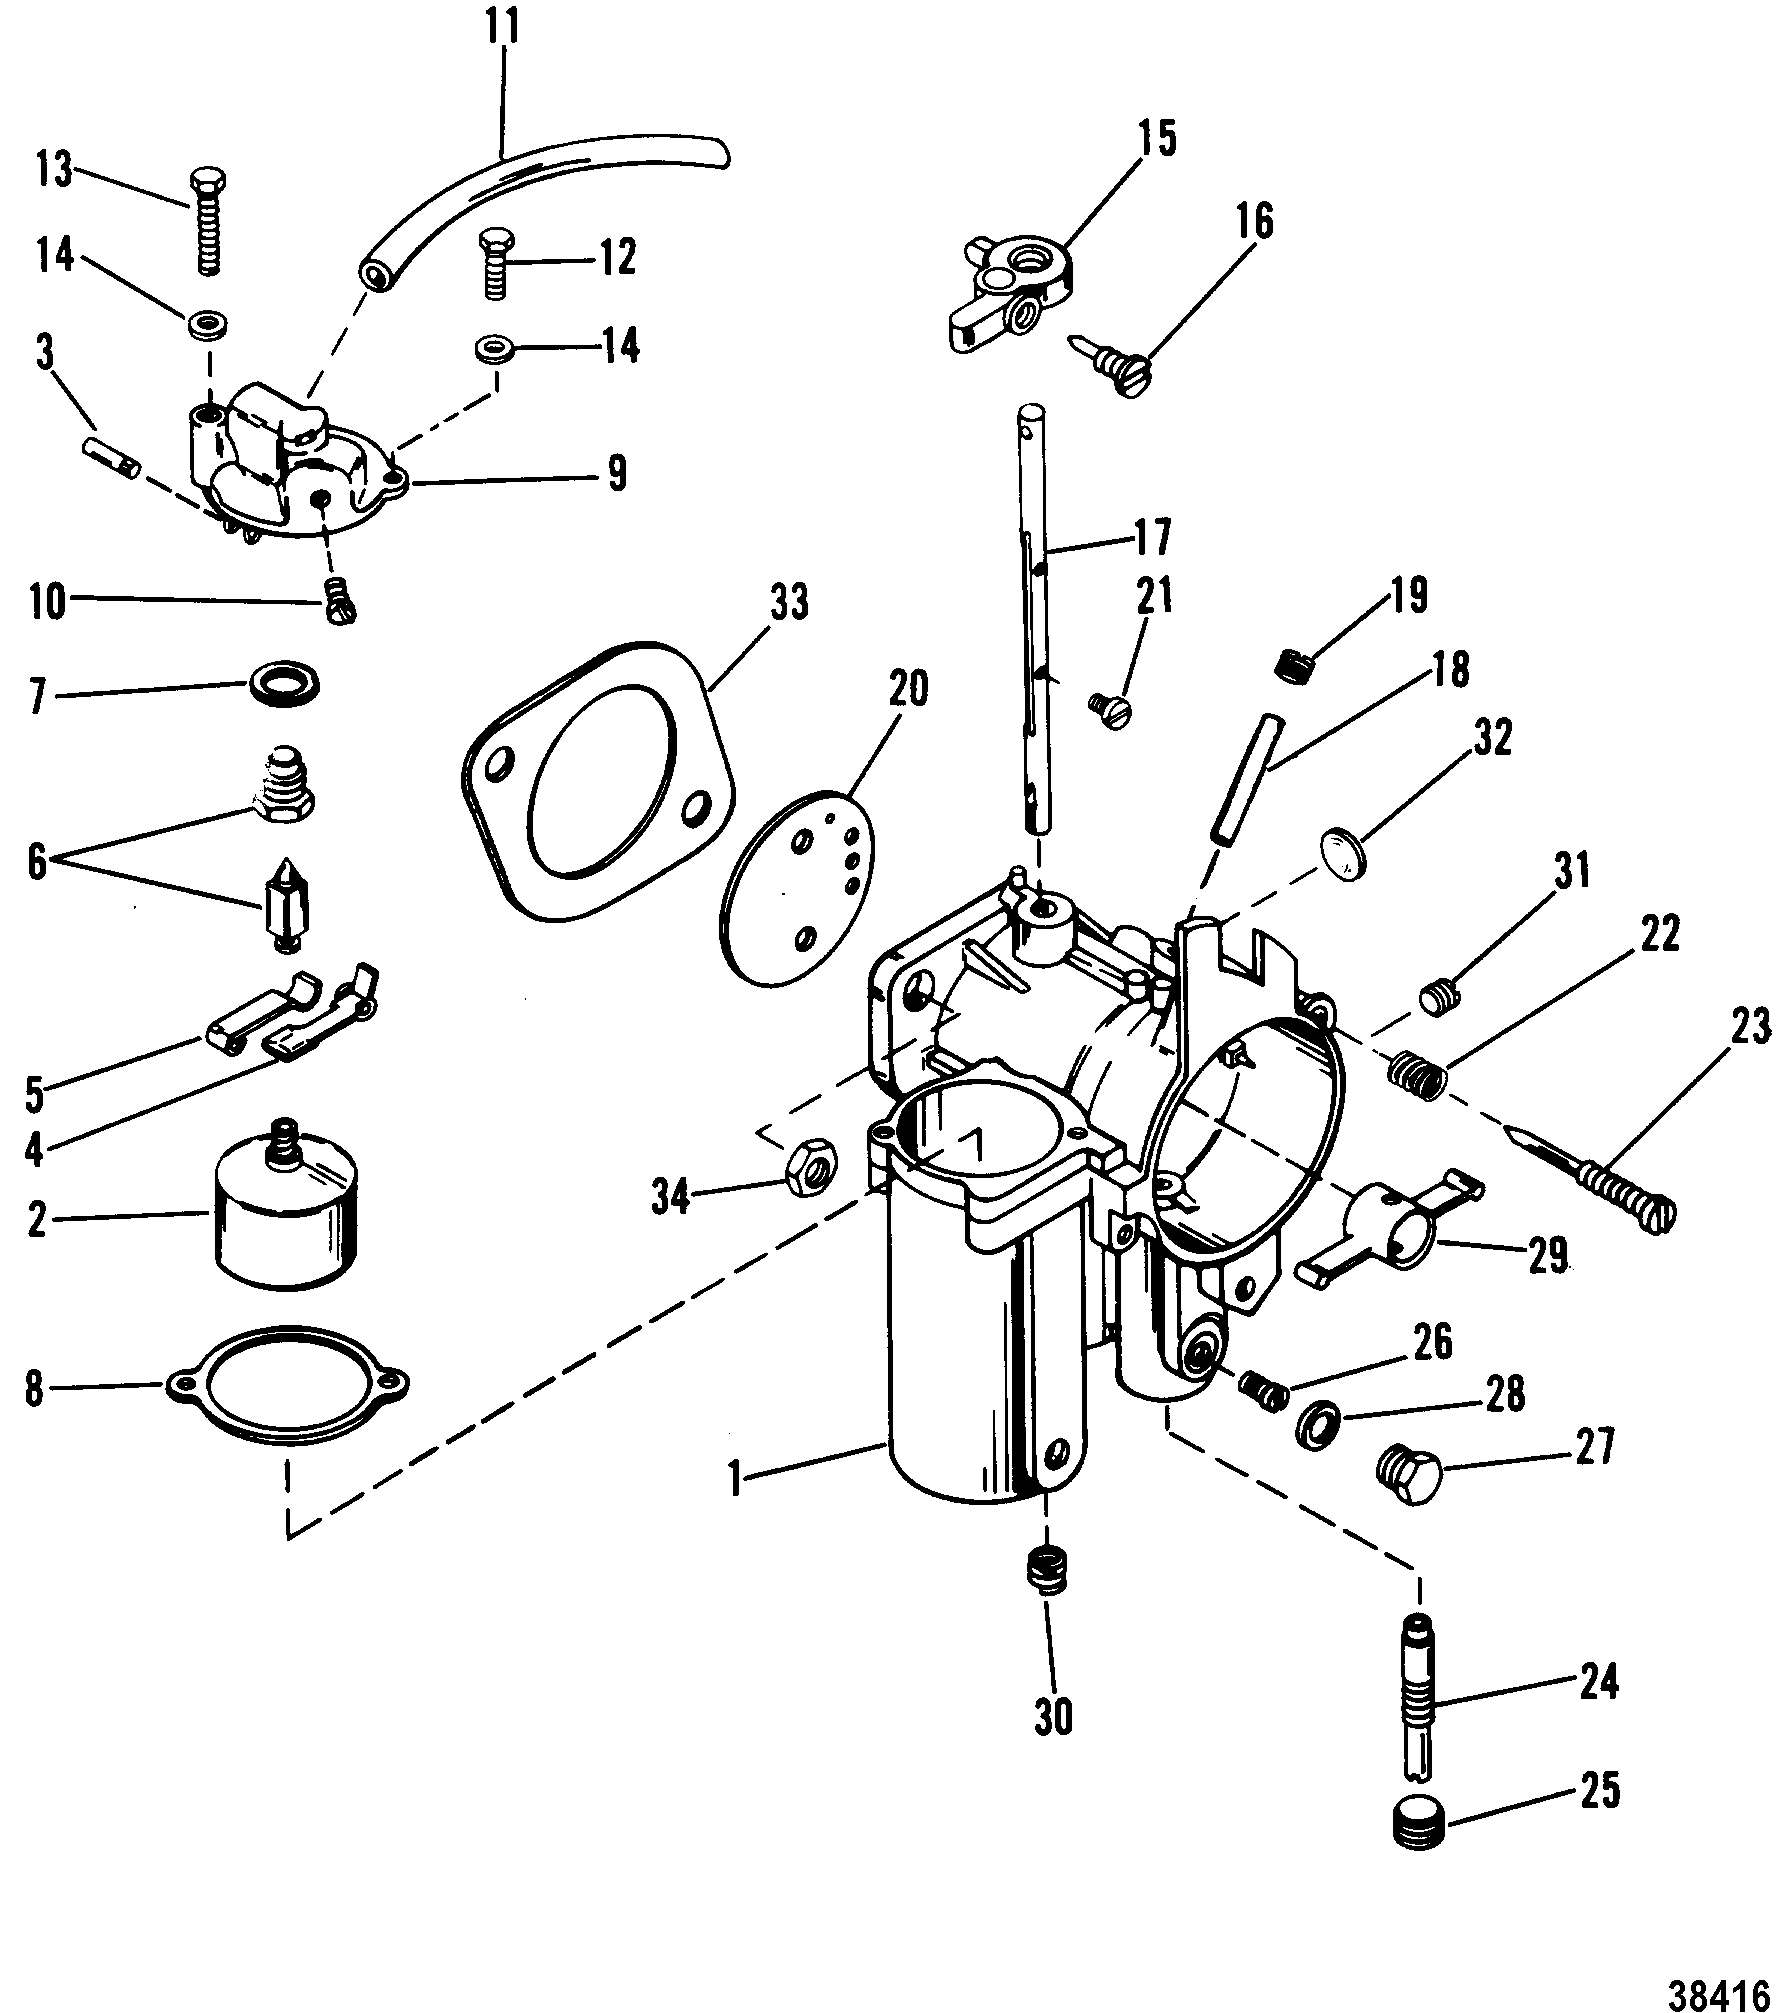 115hp Mercury Mariner Outboard Wiring Diagram : 45 Wiring